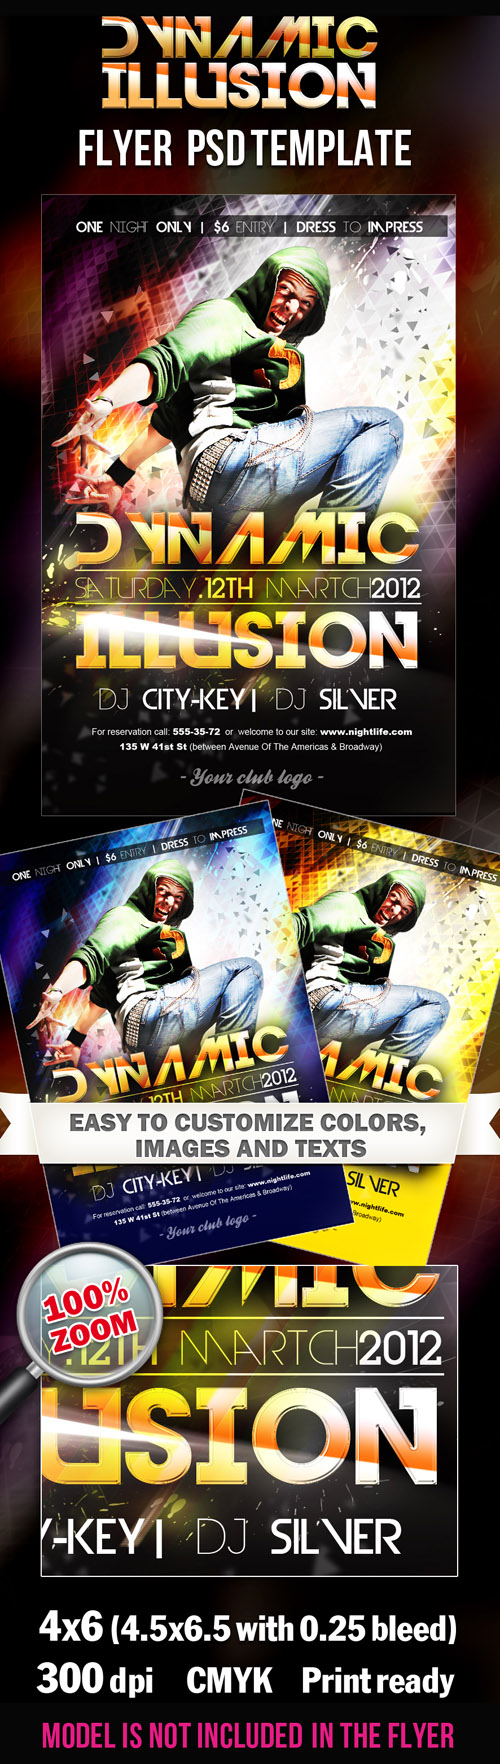 Dynamic Illusion Party - Flyer PSD Template